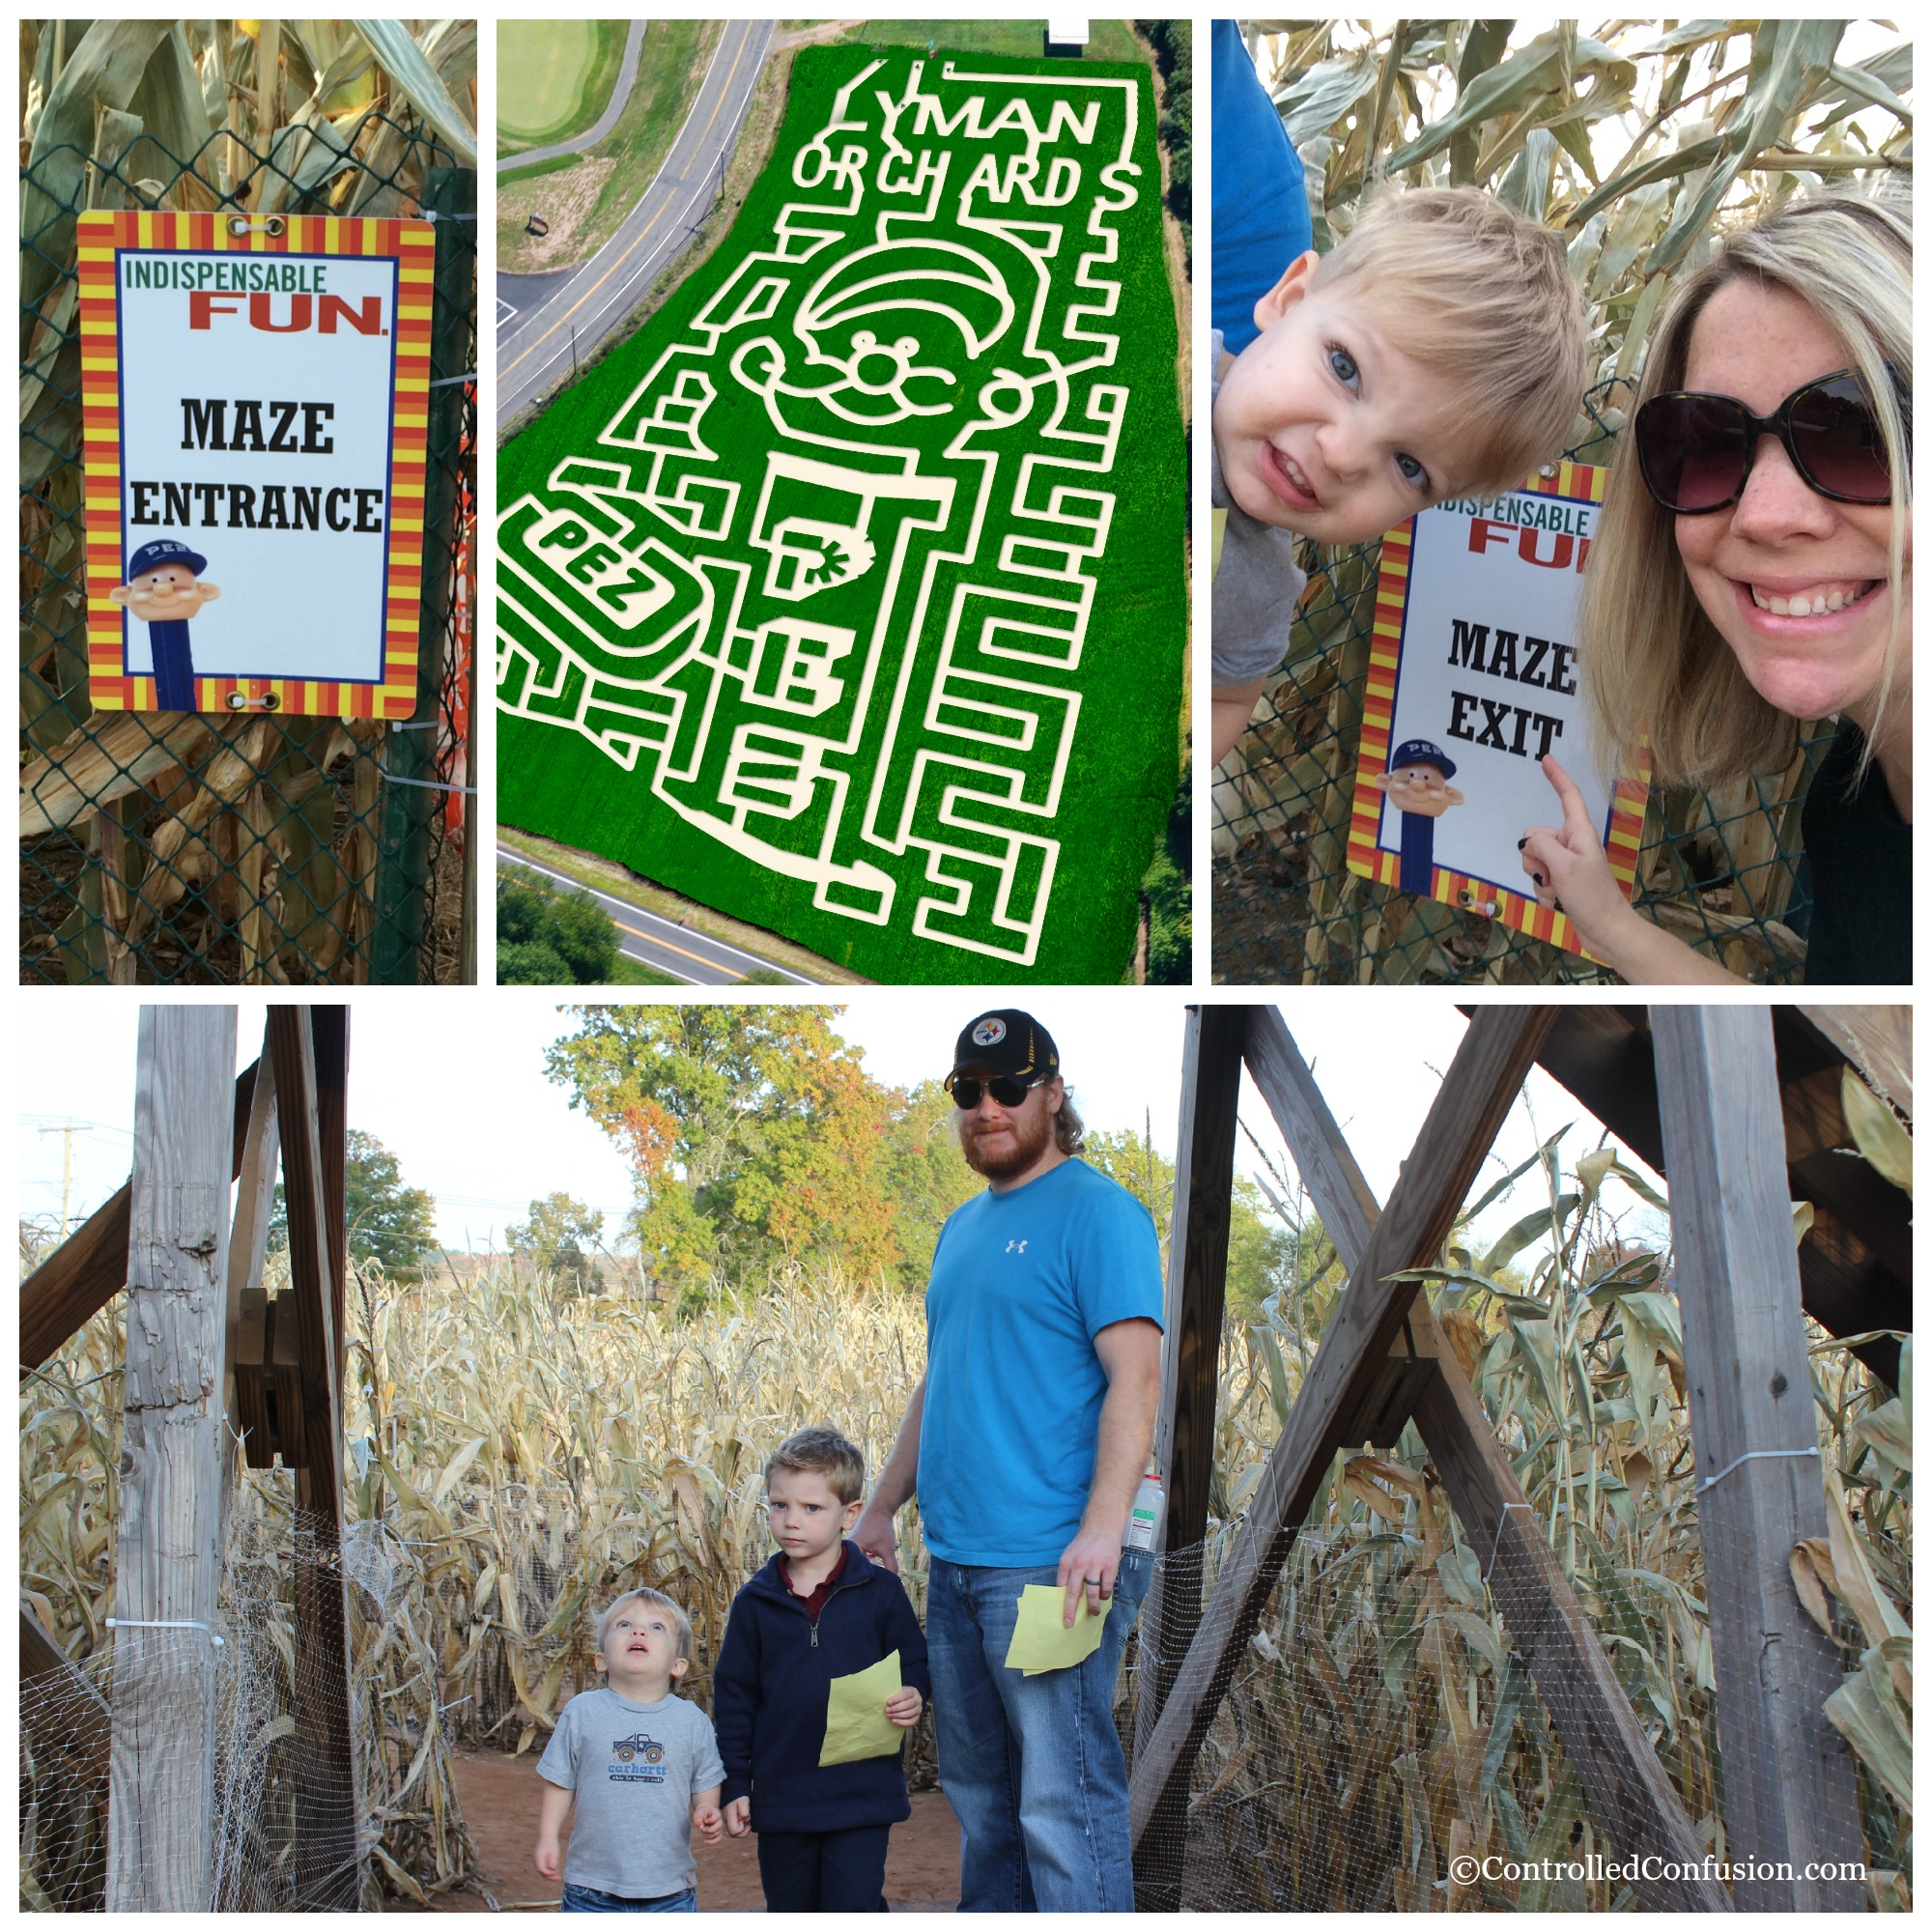 Family Fun At Lyman's Orchard for Our #LexusHarvest